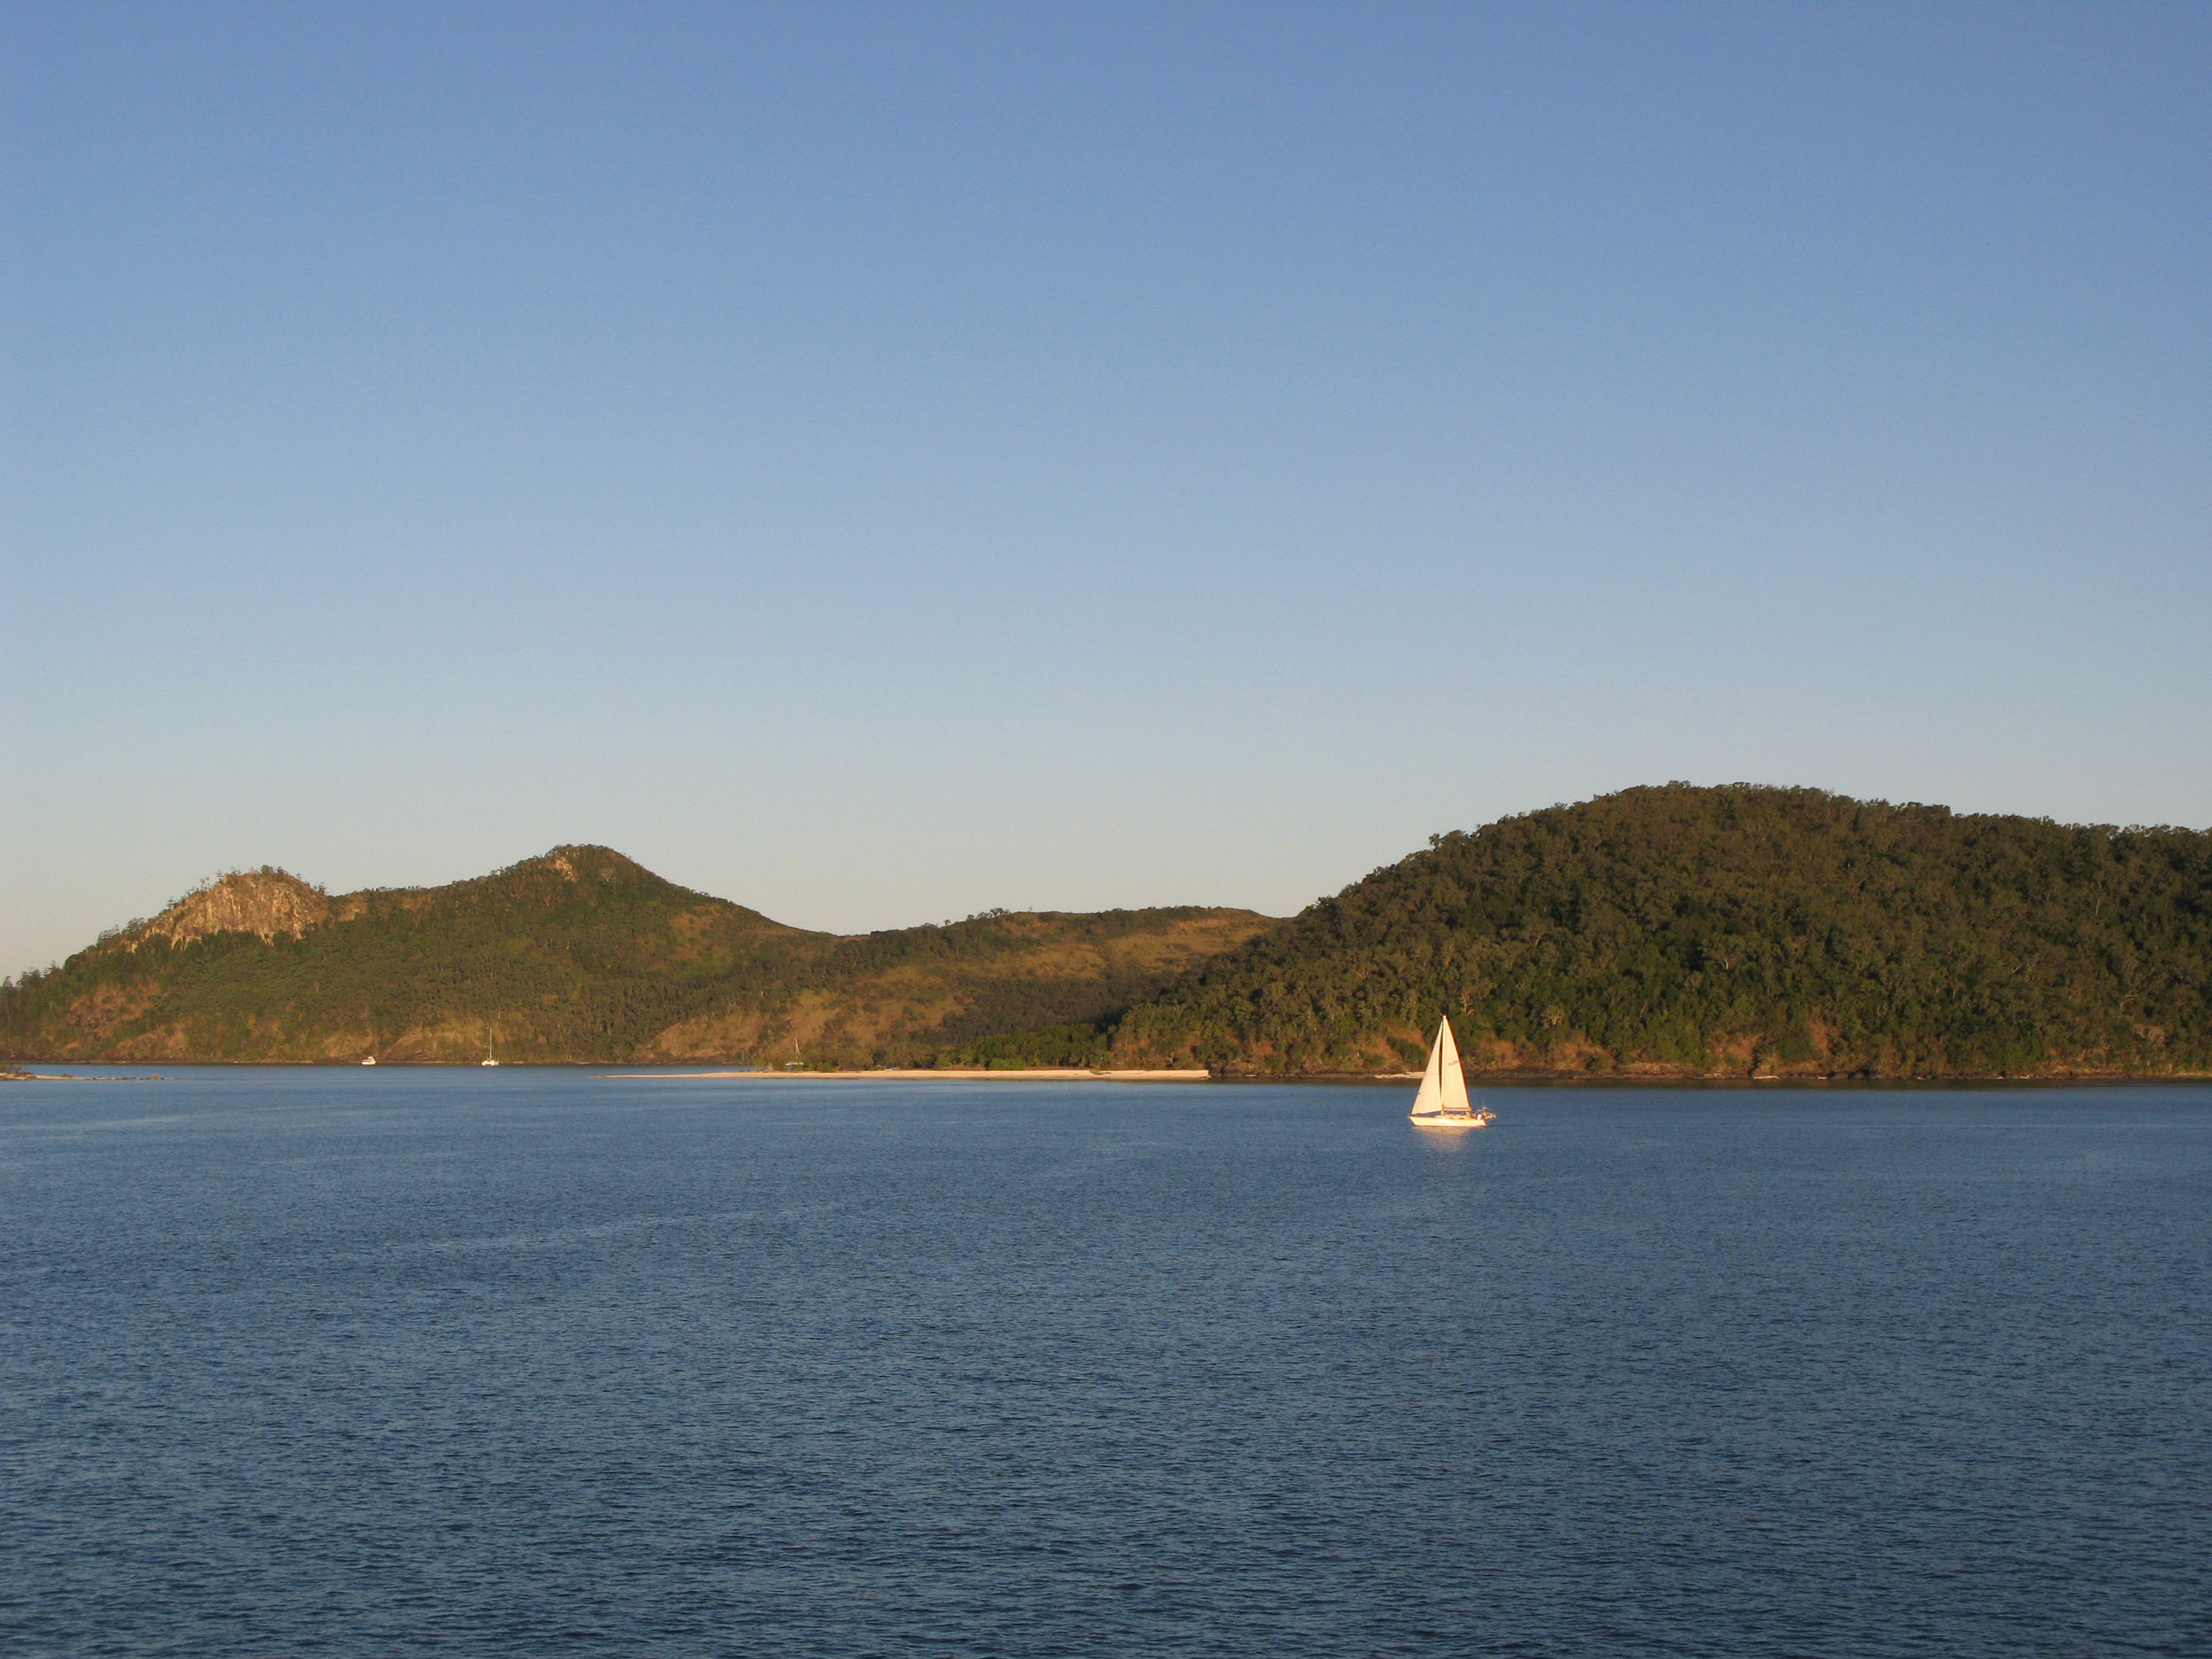 a single sailing boat navigating its way around the whitsunday isalnds, queensland